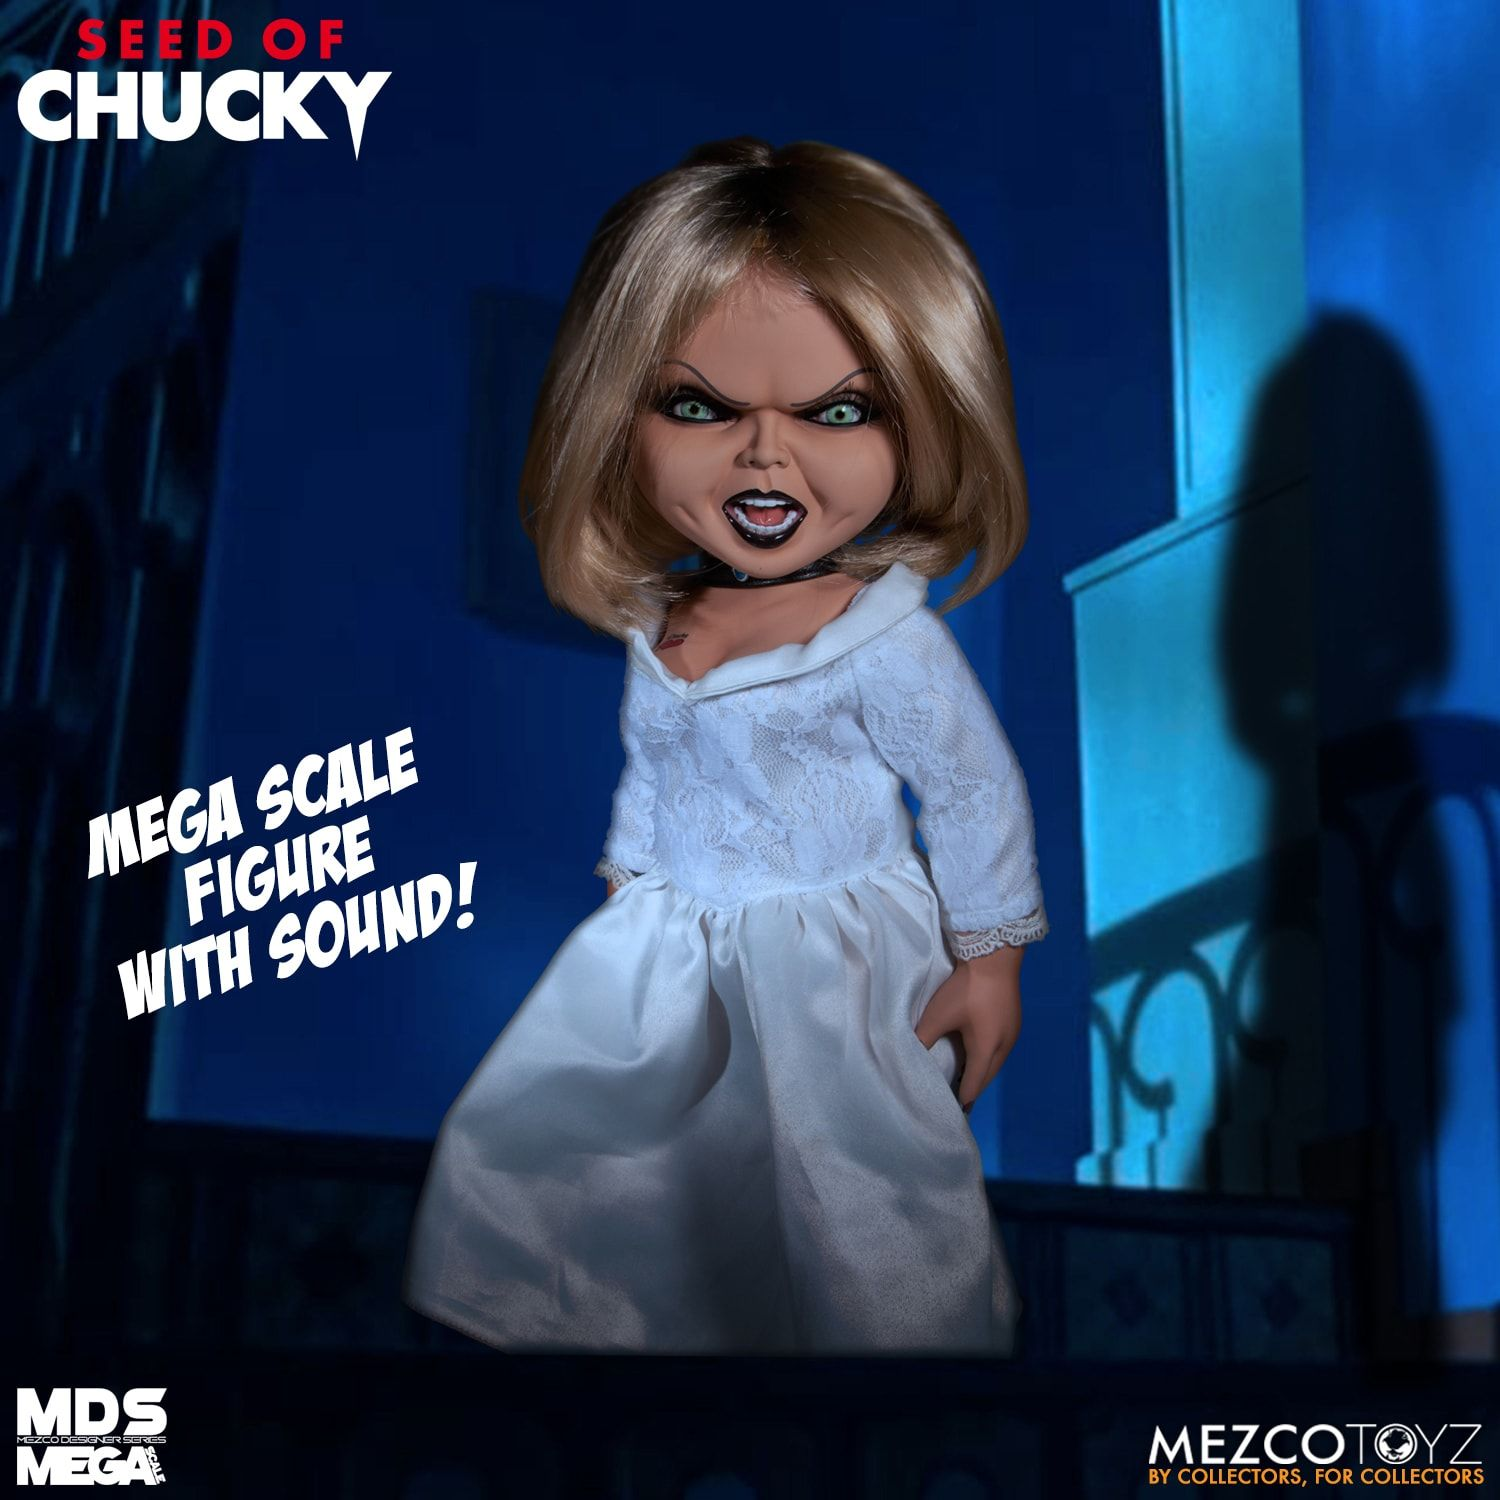 Seed of Chucky Talking Tiffany Mega Scale Action Figure